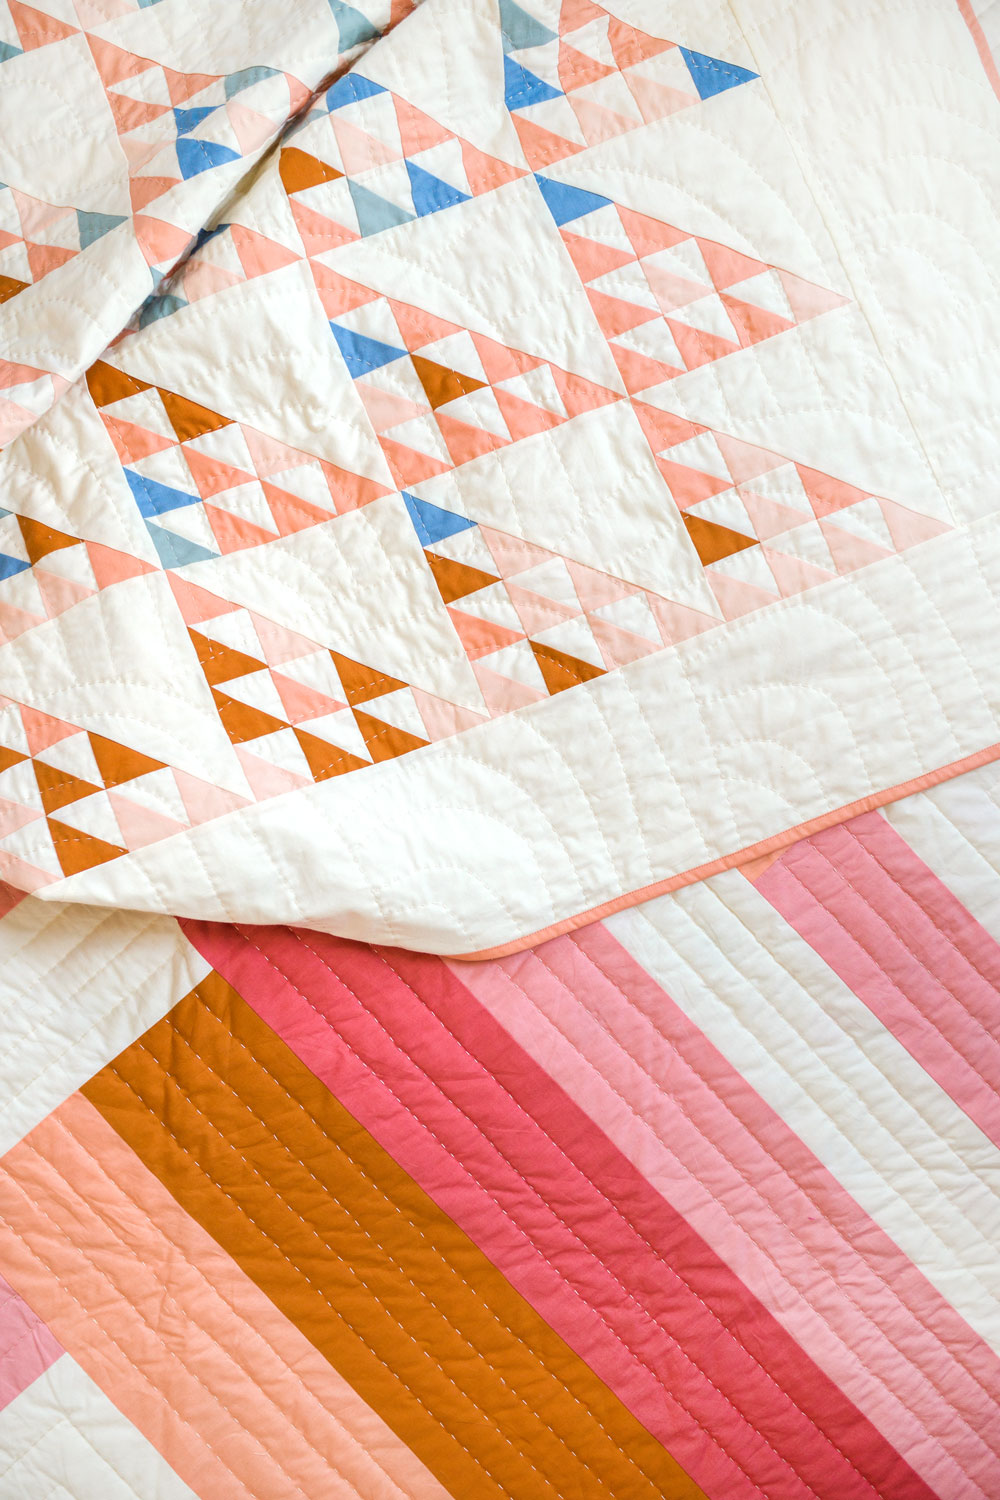 Beginner Quilting Questions are answered in this multi-part blog series! Learn all about marking tools, resizing quilts and how to choose the right batting